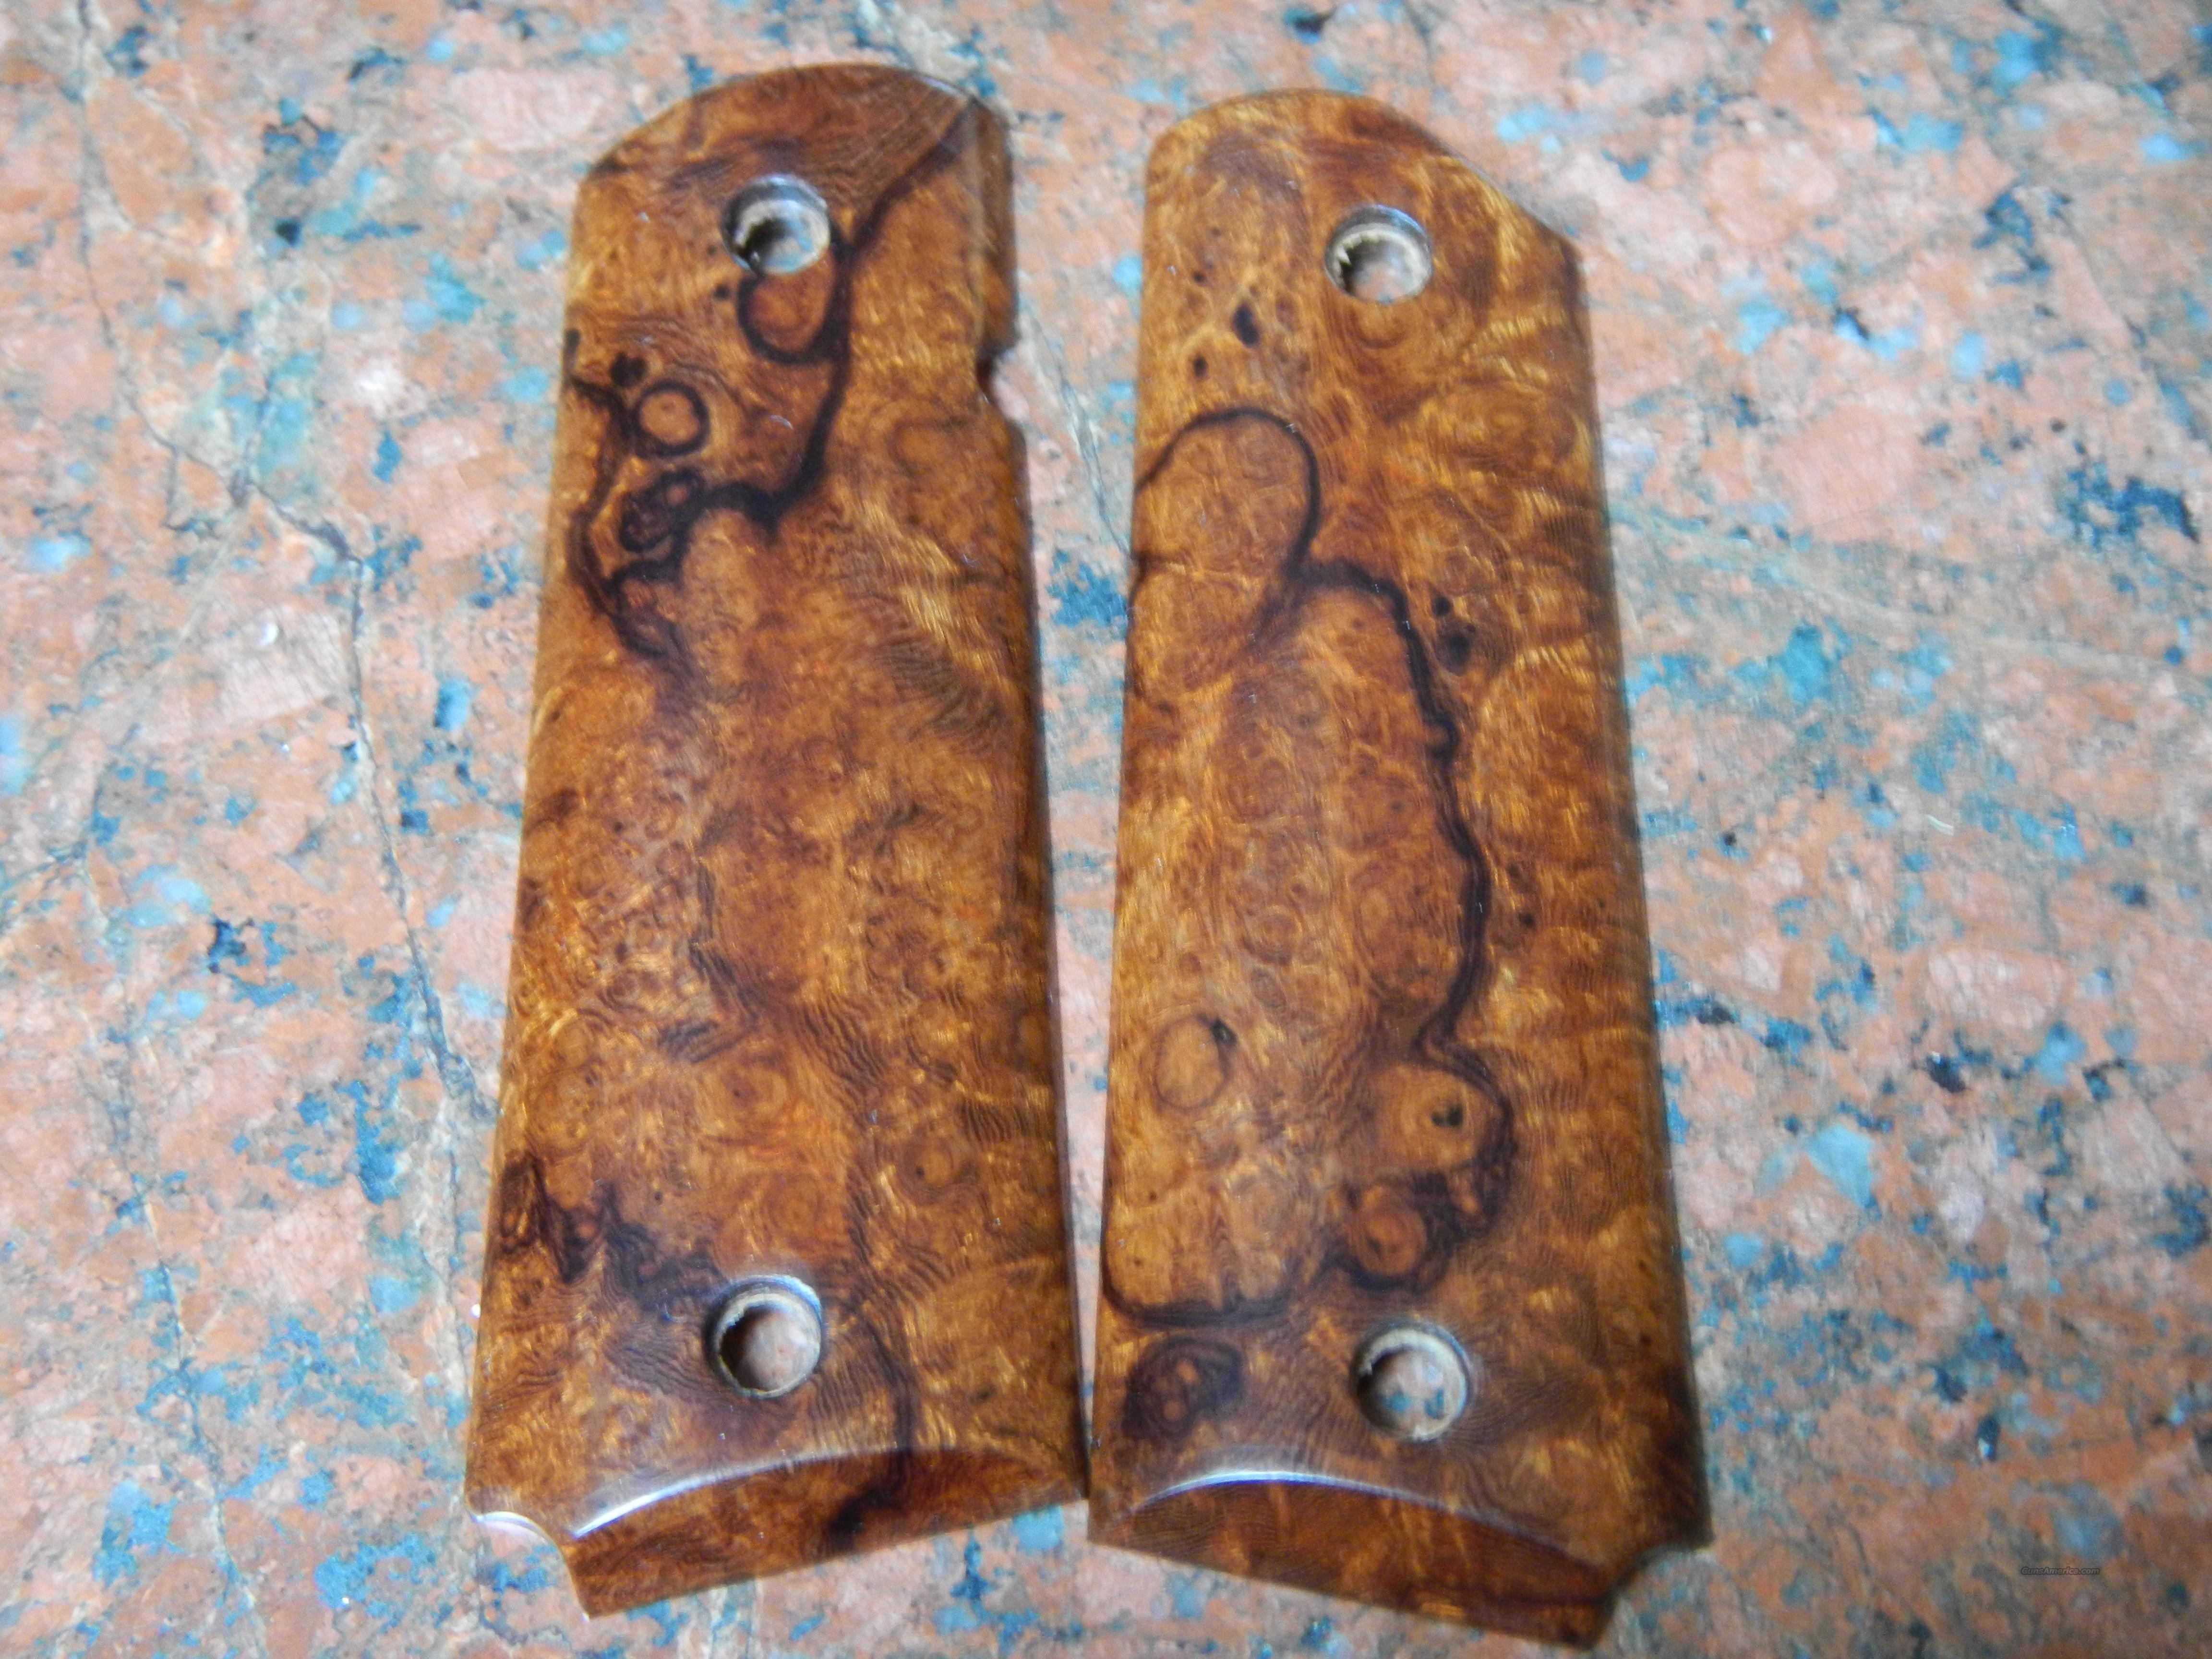 Arizona Desert Ironwood Burl 1911 grips  Non-Guns > Gunstocks, Grips & Wood